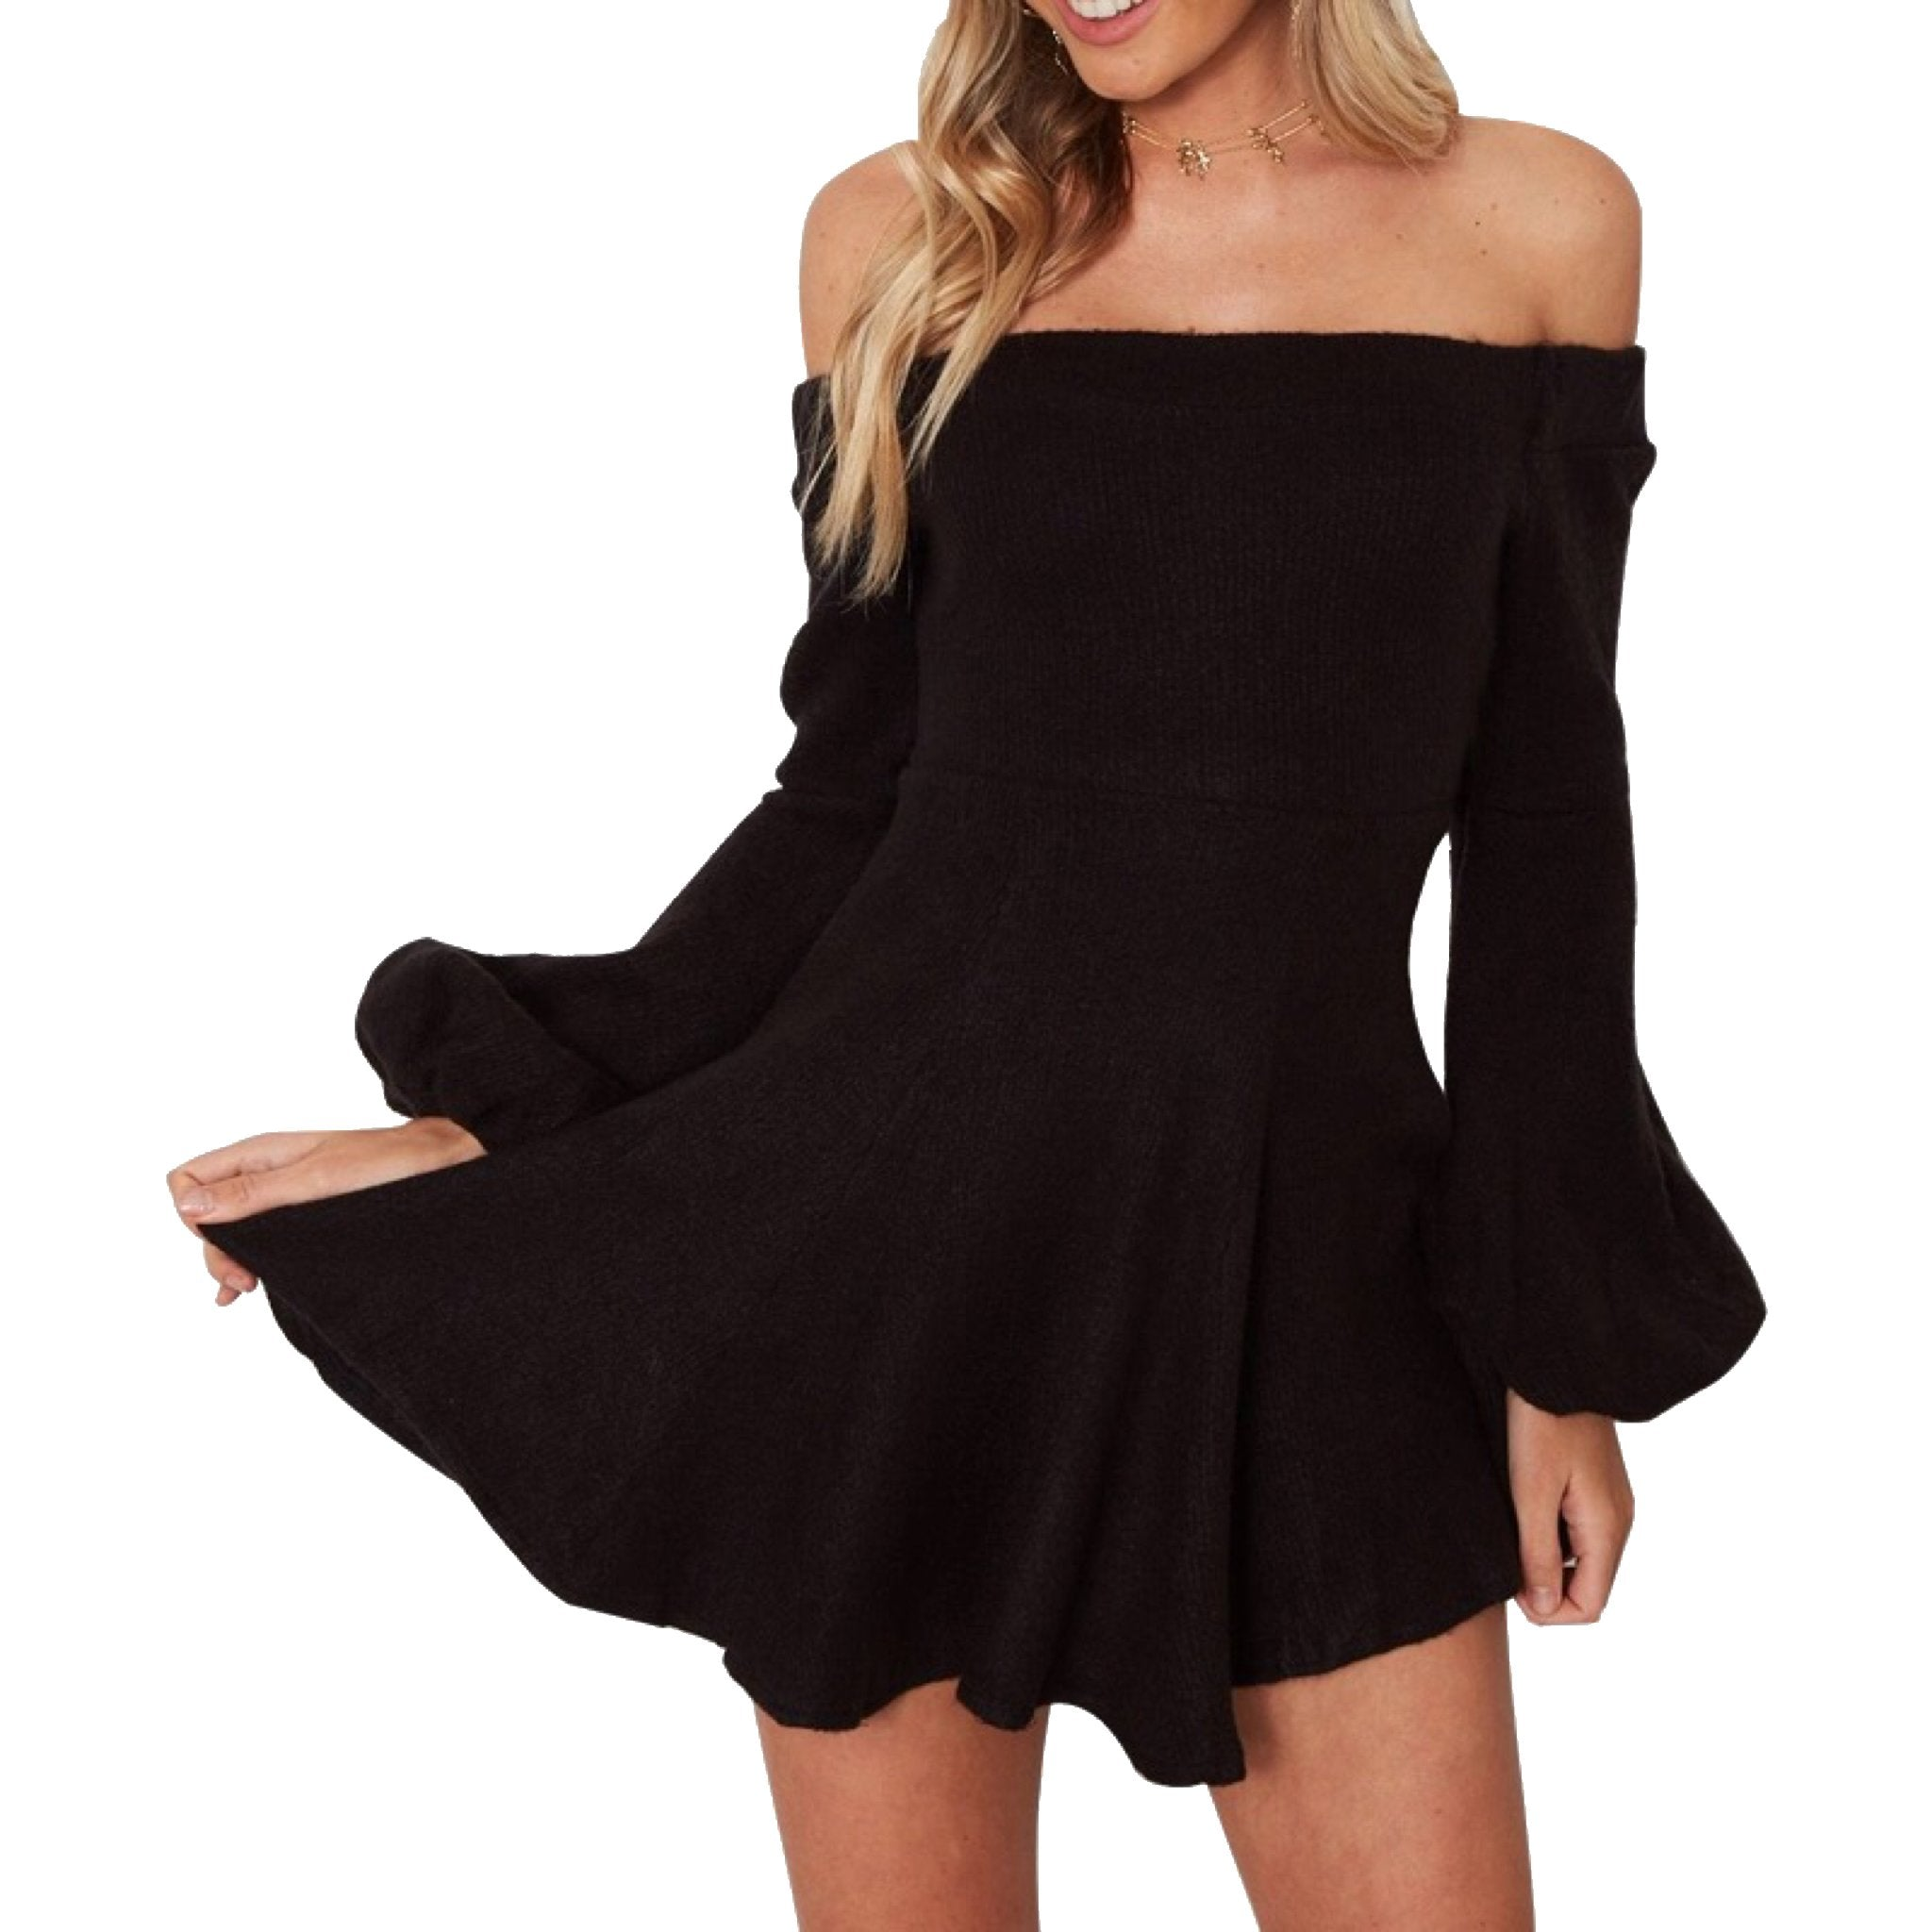 Off The Shoulder Balloon Sleeve Knit Mini Dress in Black-Lookbook Boutique